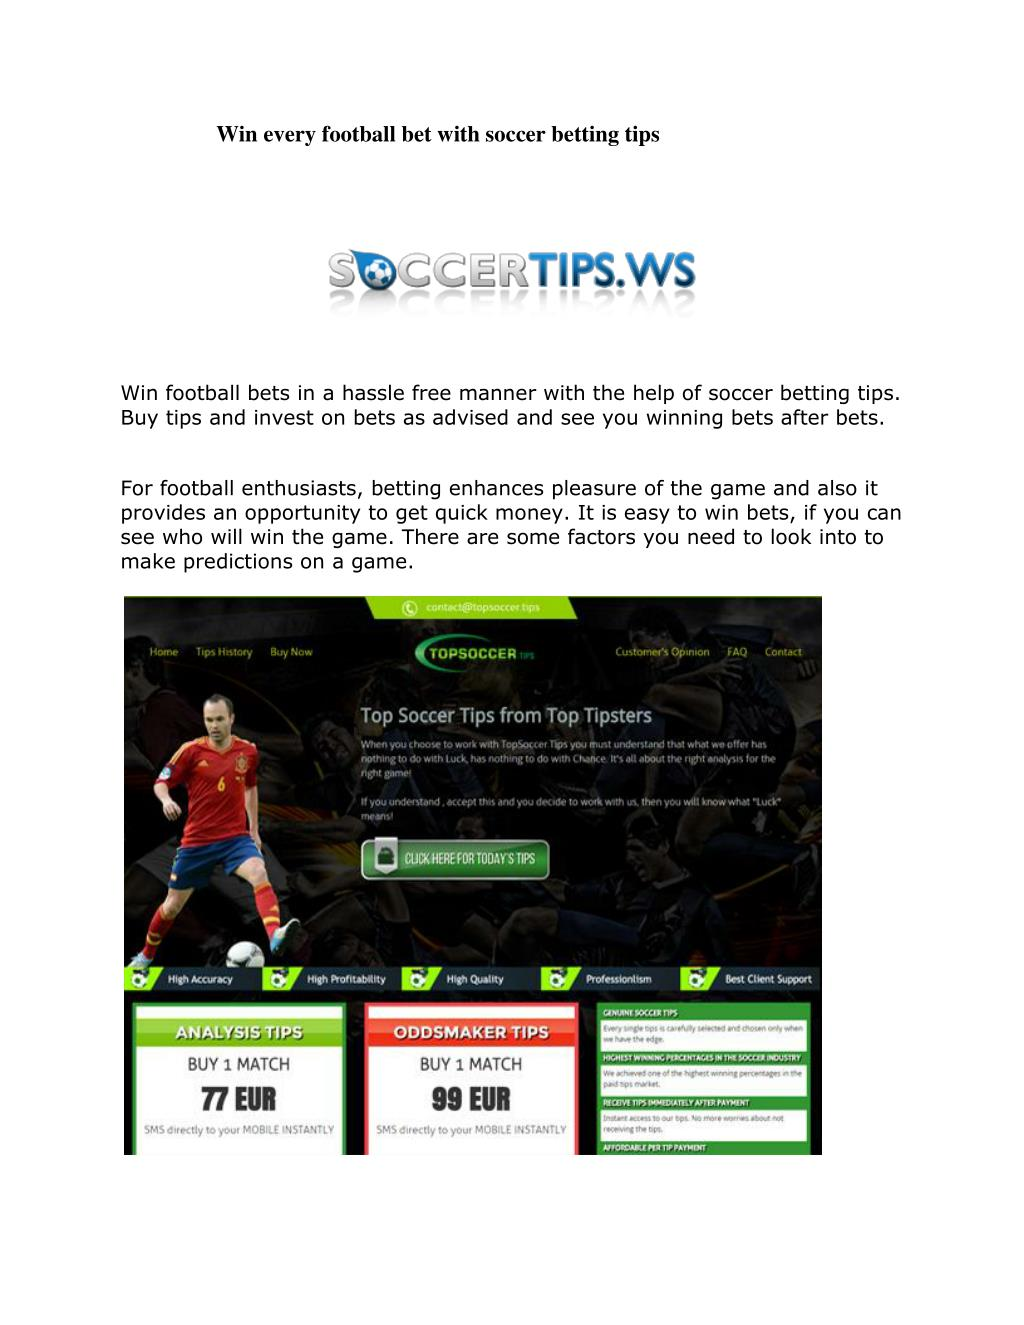 PPT - Win every football bet with soccer betting tips PowerPoint